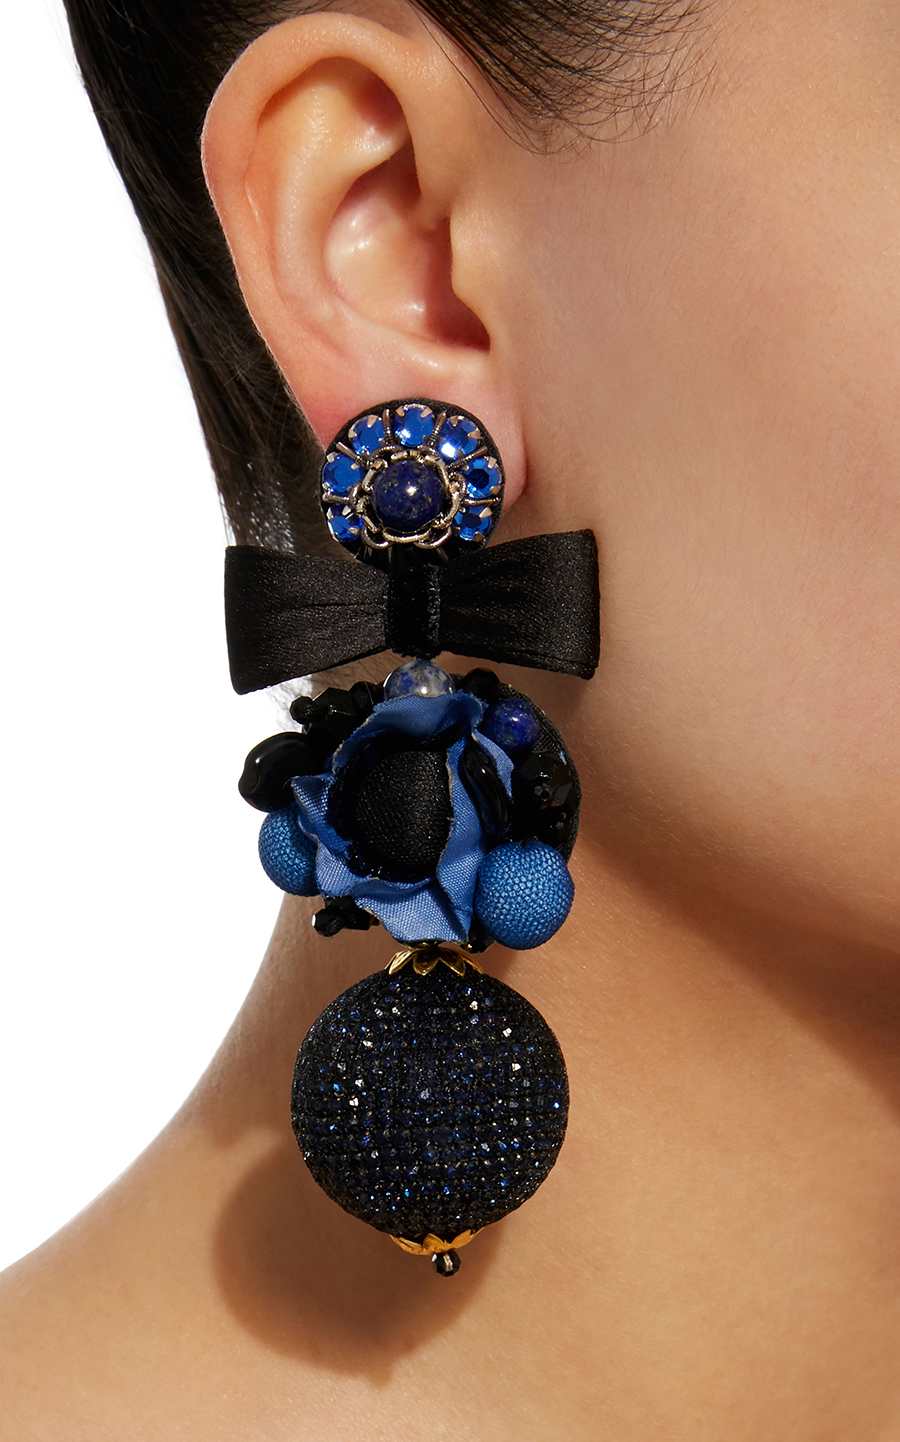 Blue Flower Ball Earrings Ranjana Khan earrings